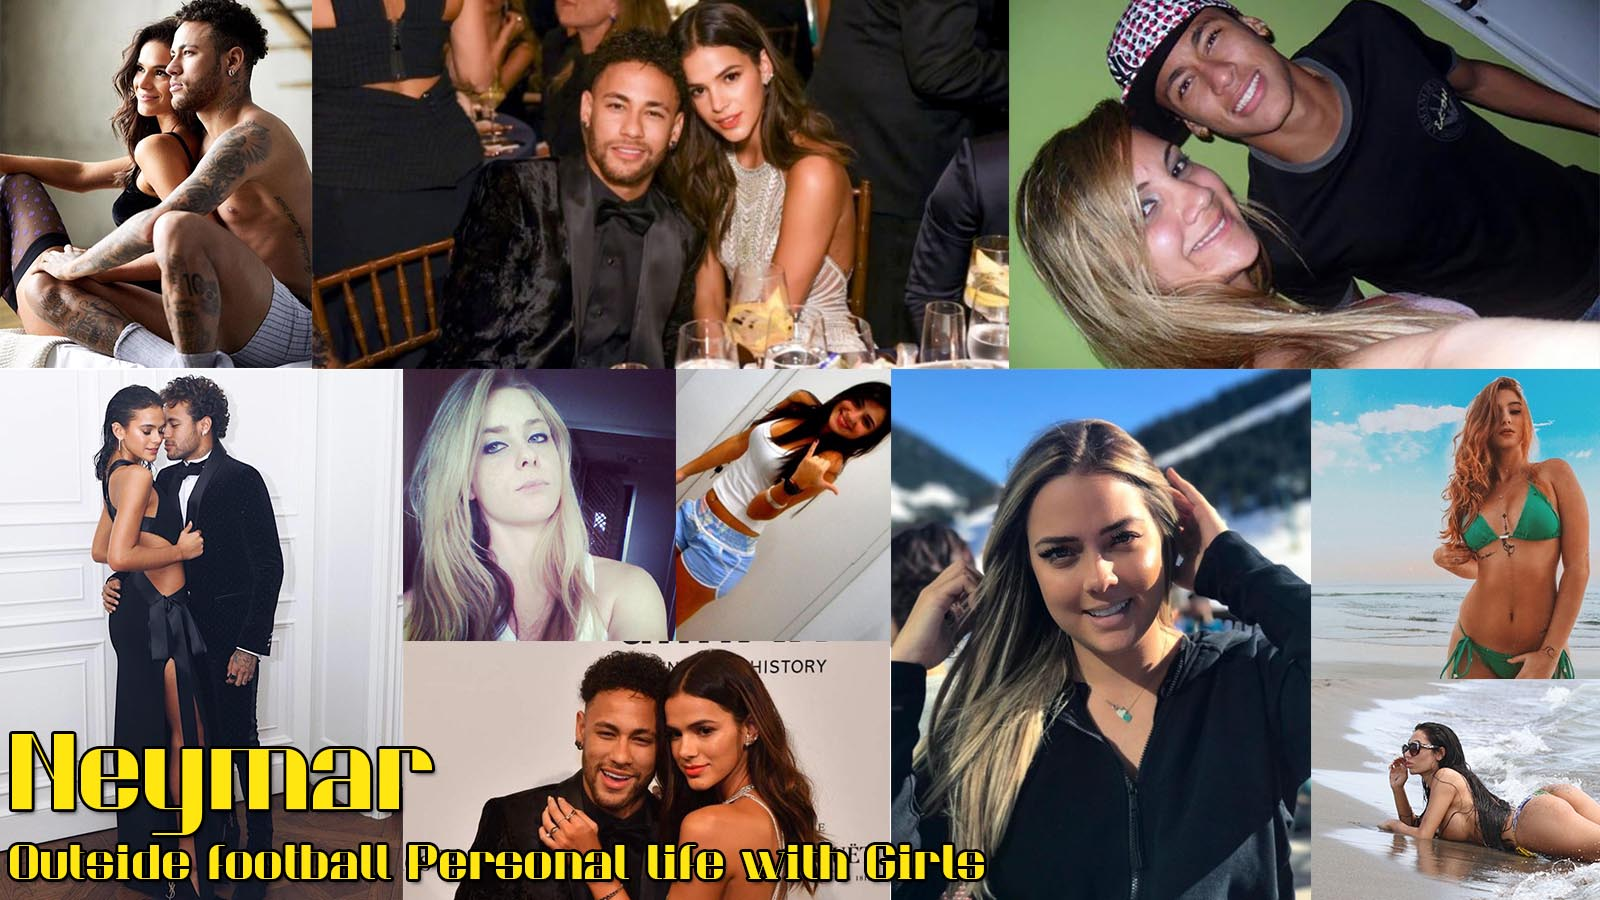 Neymar Outside football Personal life with Girls